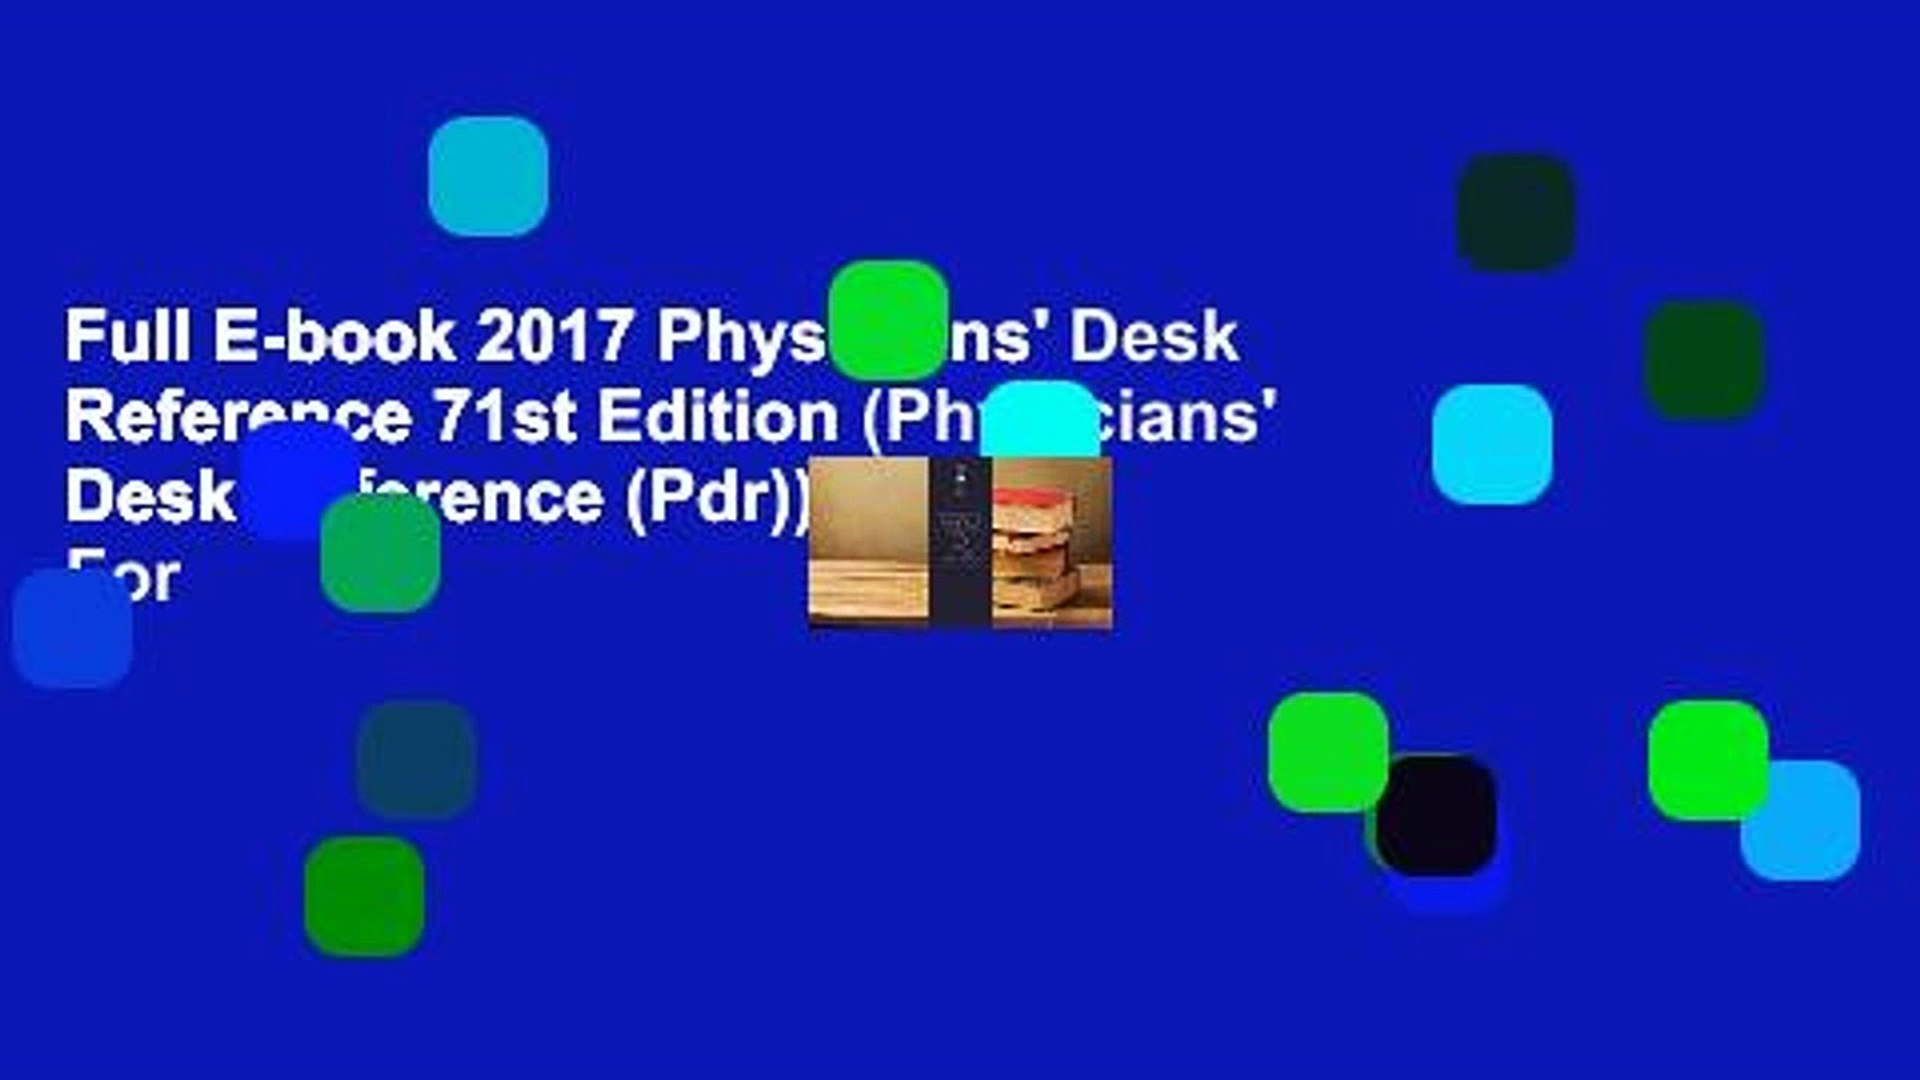 Terrific Full E Book 2017 Physicians Desk Reference 71St Edition Physicians Desk Reference Pdr For Download Free Architecture Designs Embacsunscenecom